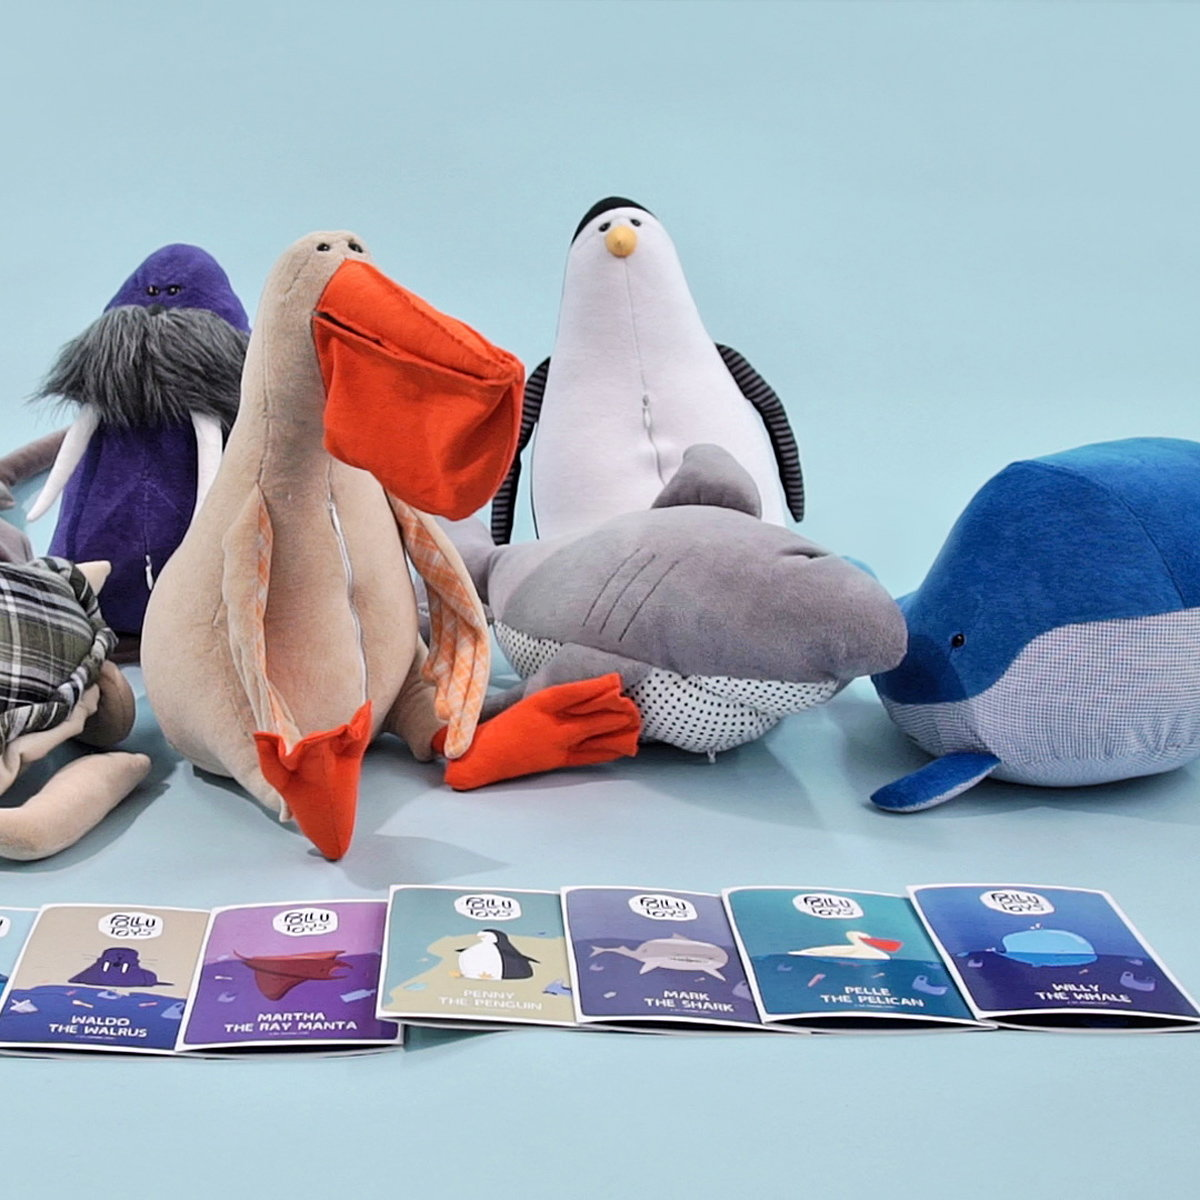 Pollutoys - Plush Toys to Teach Kids About Plastic Pollution